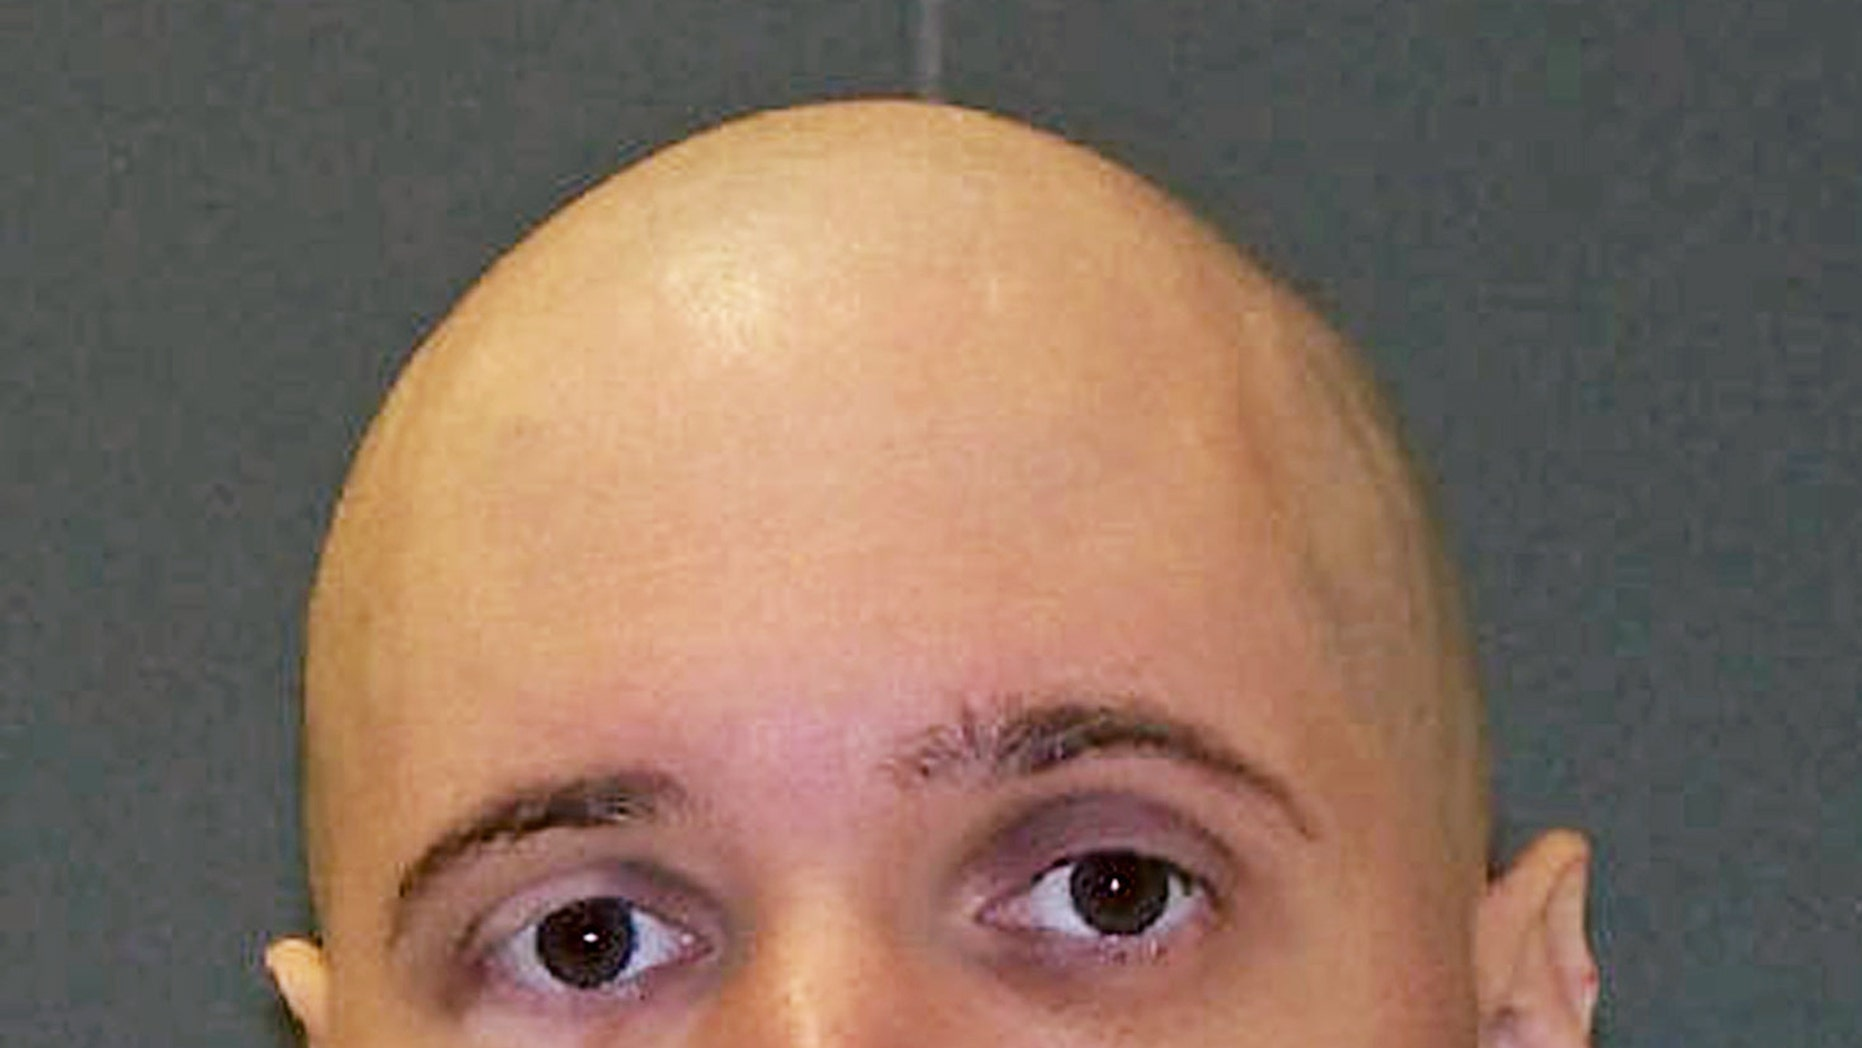 Death row inmate Thomas Whitaker awaits a decision by Gov. Greg Abbott on whether he will accept, reject or ignore a recommendation for clemency from the state's parole board.